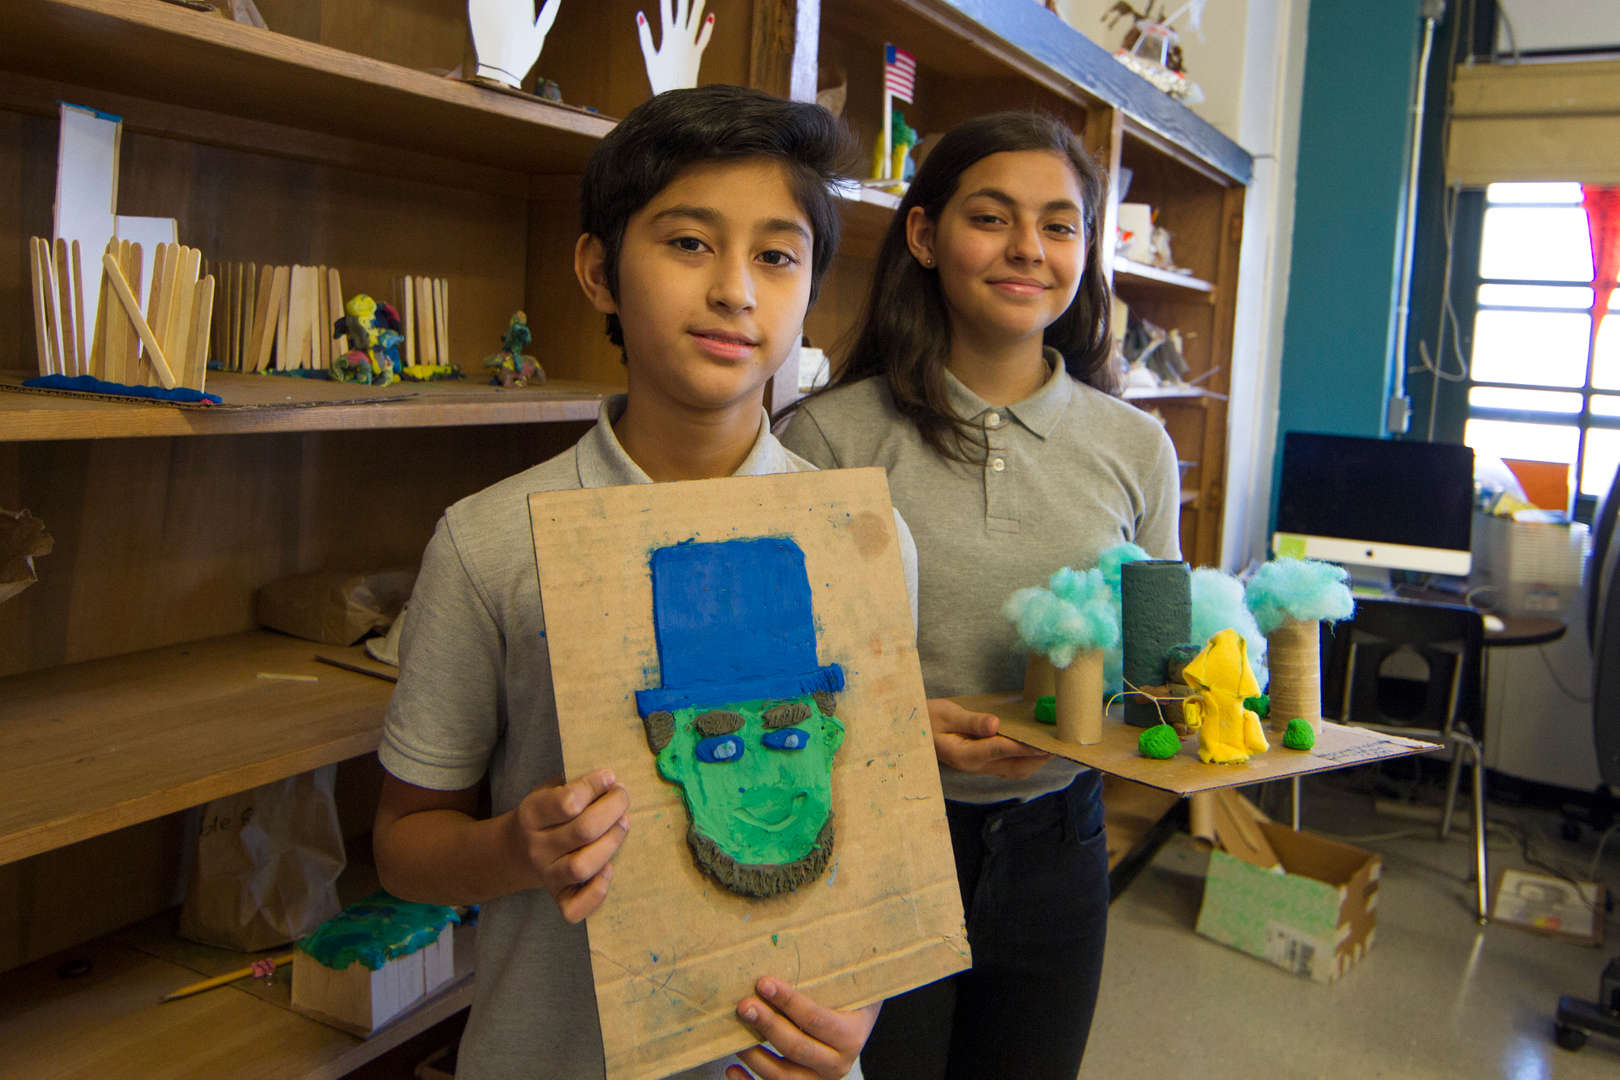 Students display art and science projects